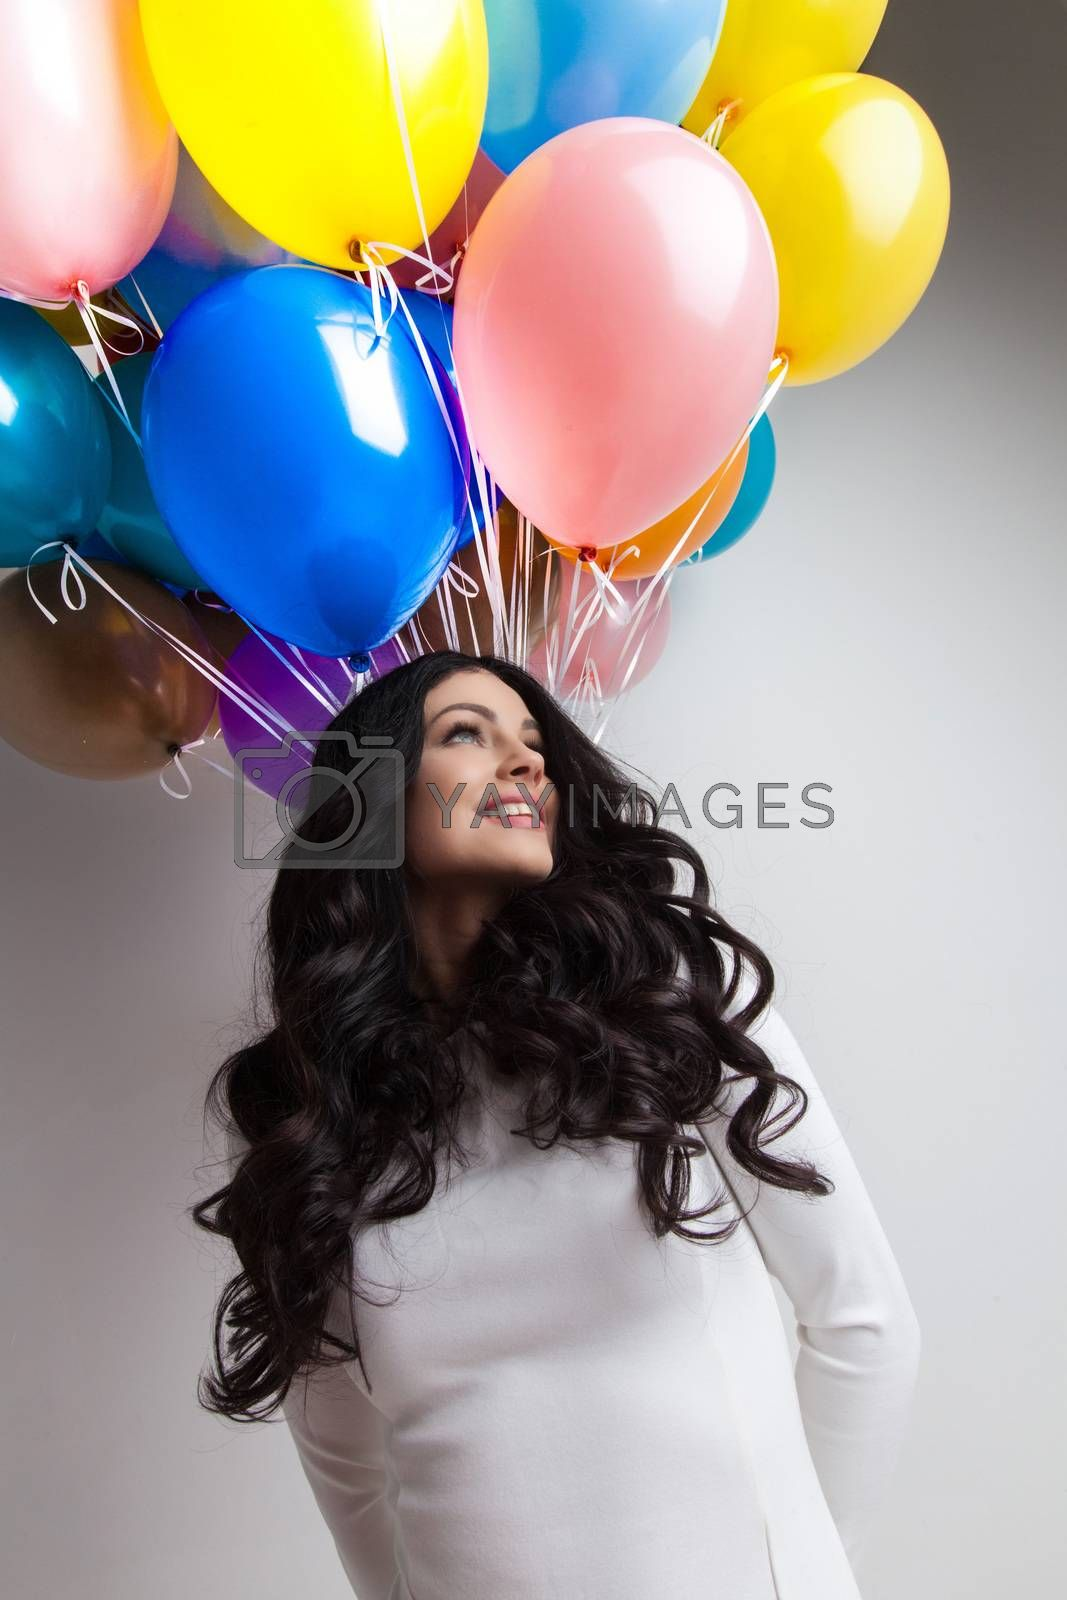 Cheerful woman holding many colorful balloons, celebration and happiness concept